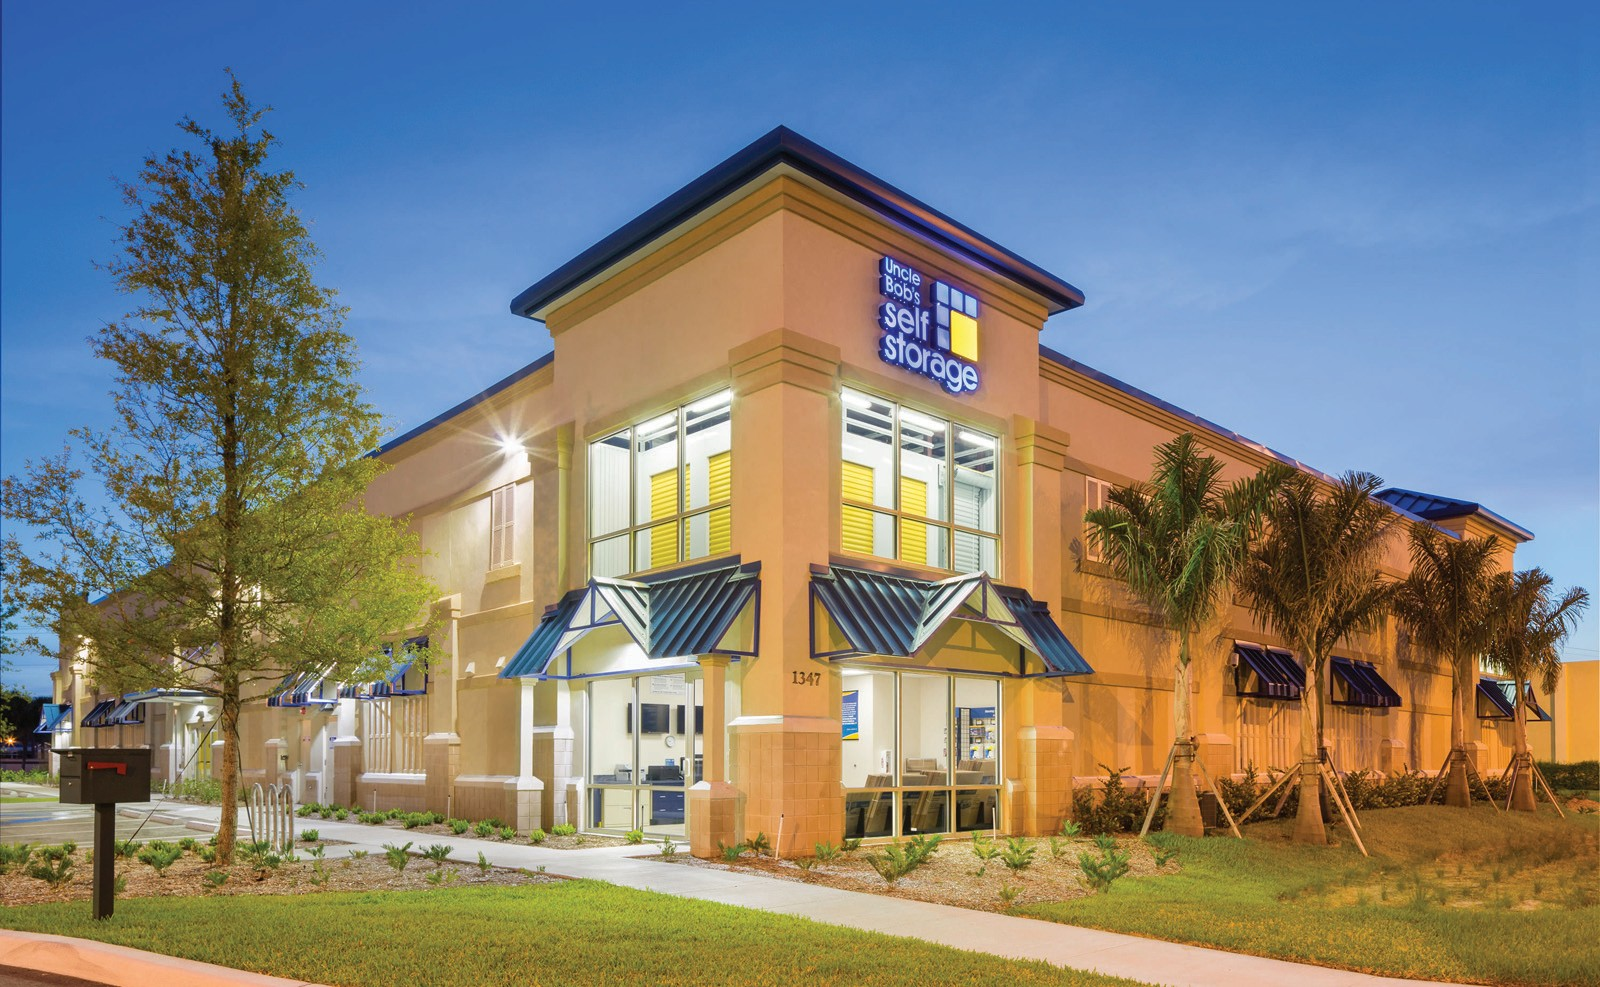 The Self Storage Industry Is A Big Business In Florida. Many People Move To